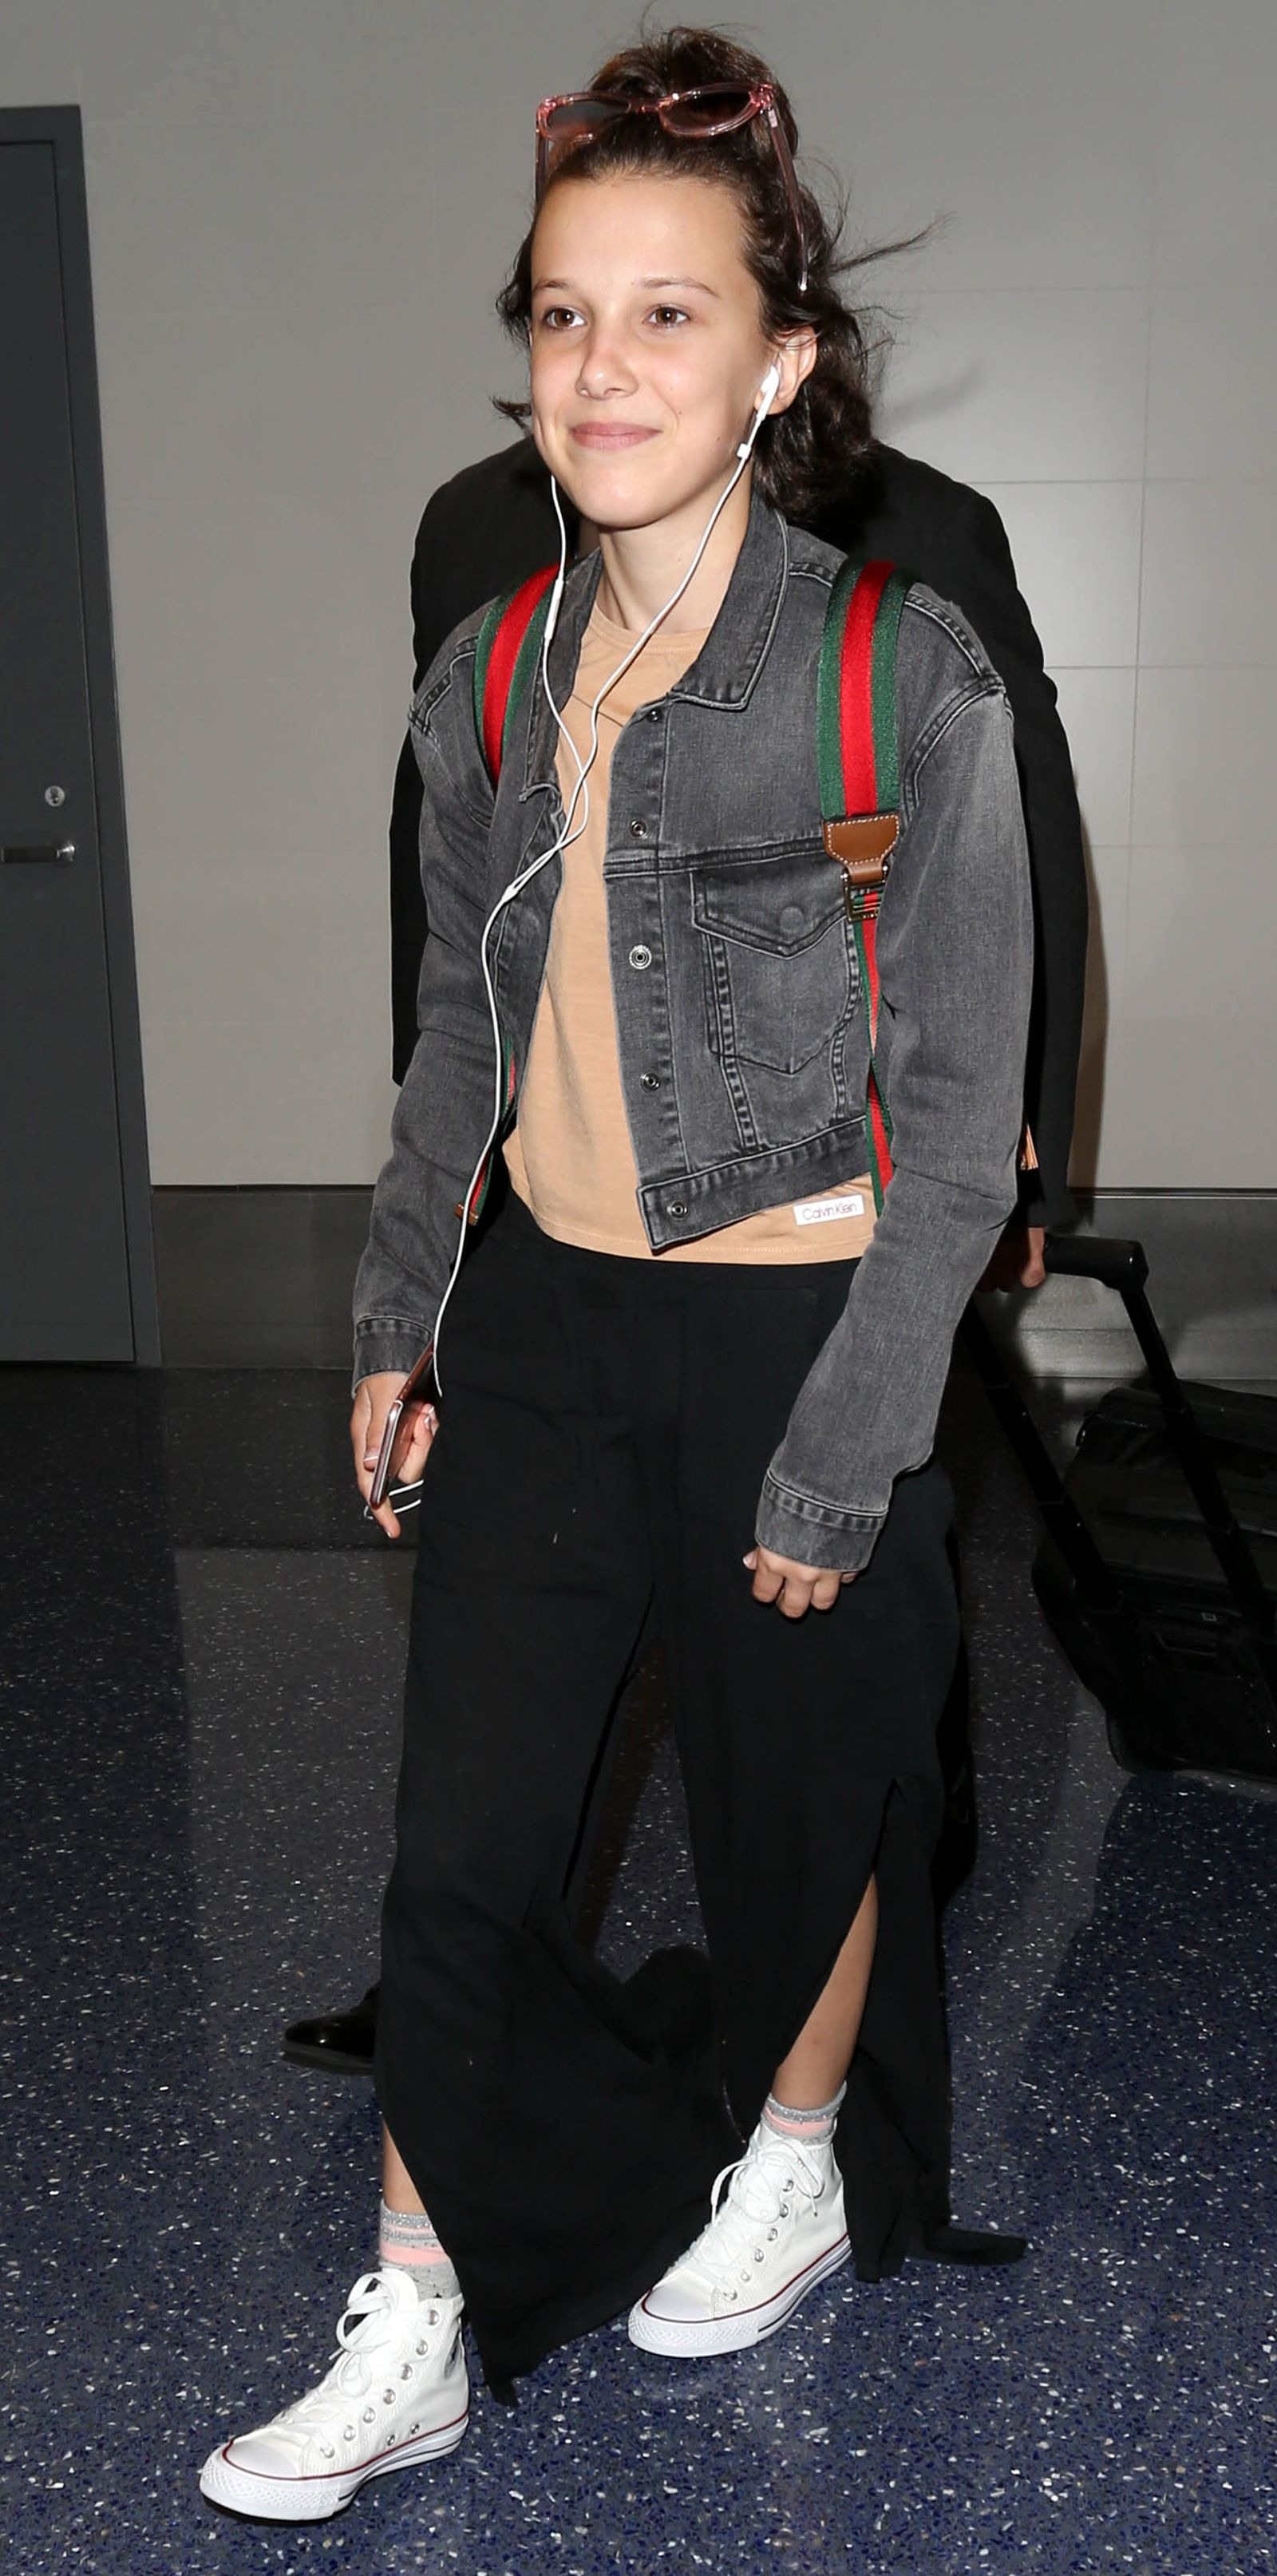 Millie Bobby Brown Hot : millie, bobby, brown, Celebrity-Inspired, Outfits, Plane, Millie, Bobby, Brown,, Celebrity, Inspired, Outfits,, Brown, Outfit